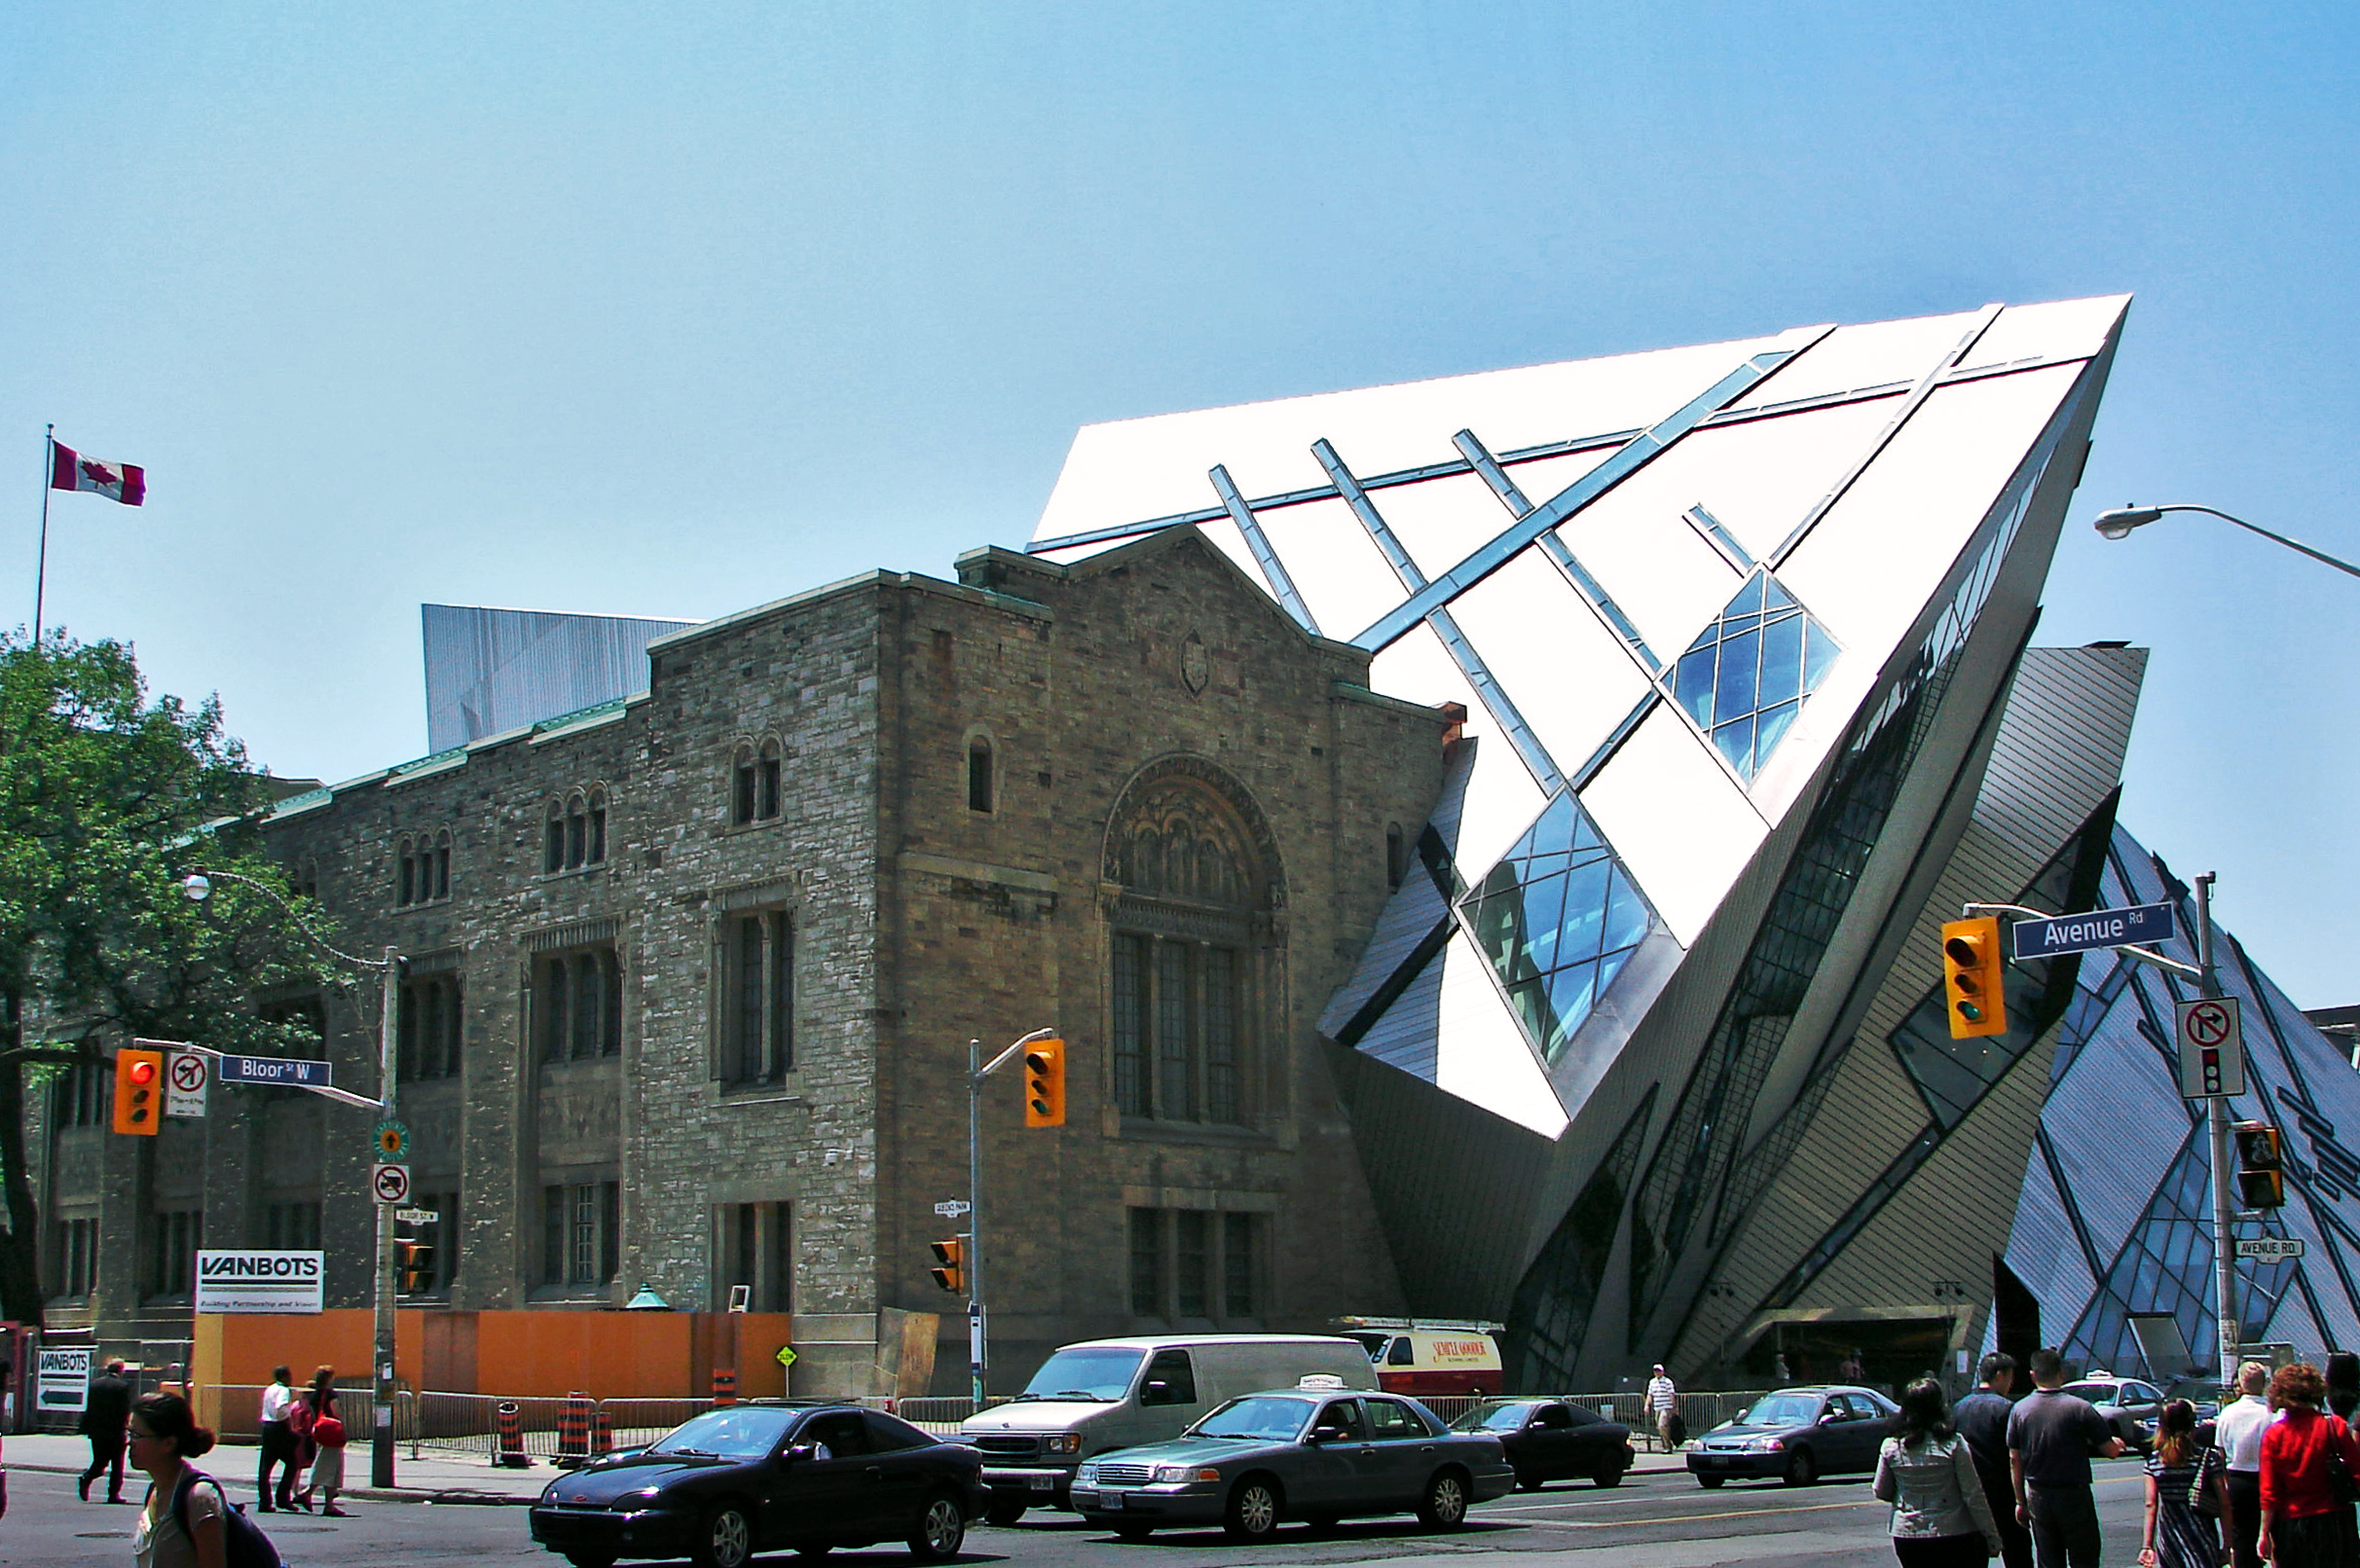 Libeskind's addition to the historicRoyal Ontario Museum, Toronto, Canada